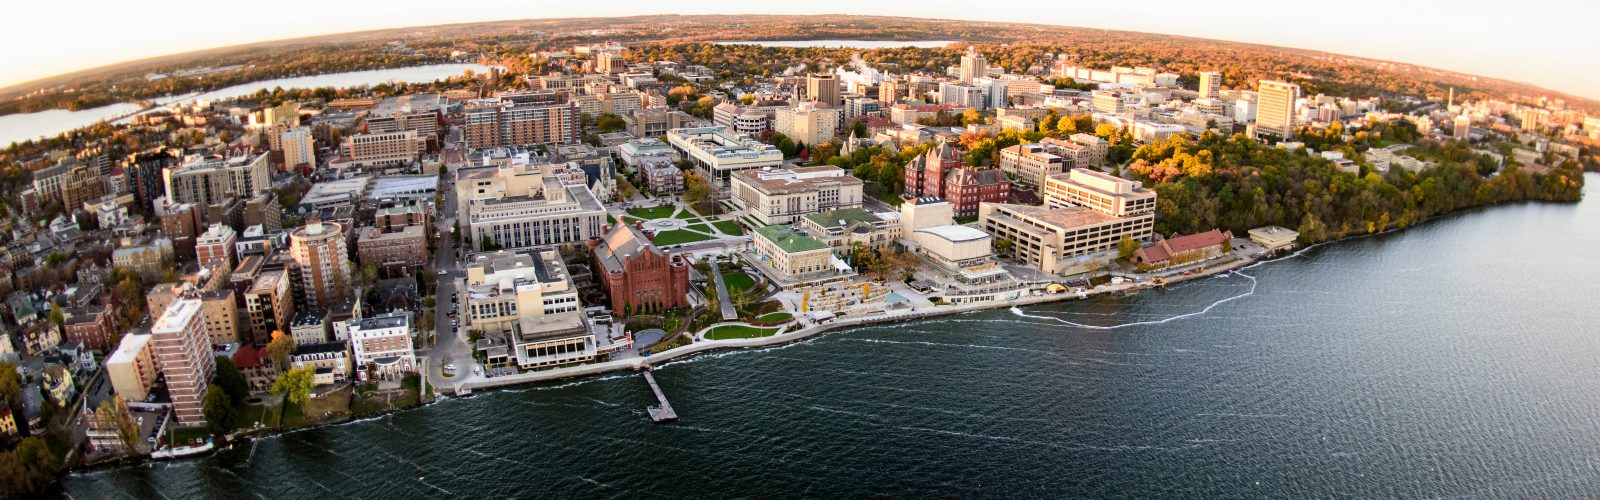 Lake Mendota and the University of Wisconsin-Madison campus, including the Memorial Union Terrace, are pictured in an early morning aerial taken from a helicopter on Oct. 23, 2018. This photograph was captured with a fisheye lens. (Photo by Bryce Richter /UW-Madison)